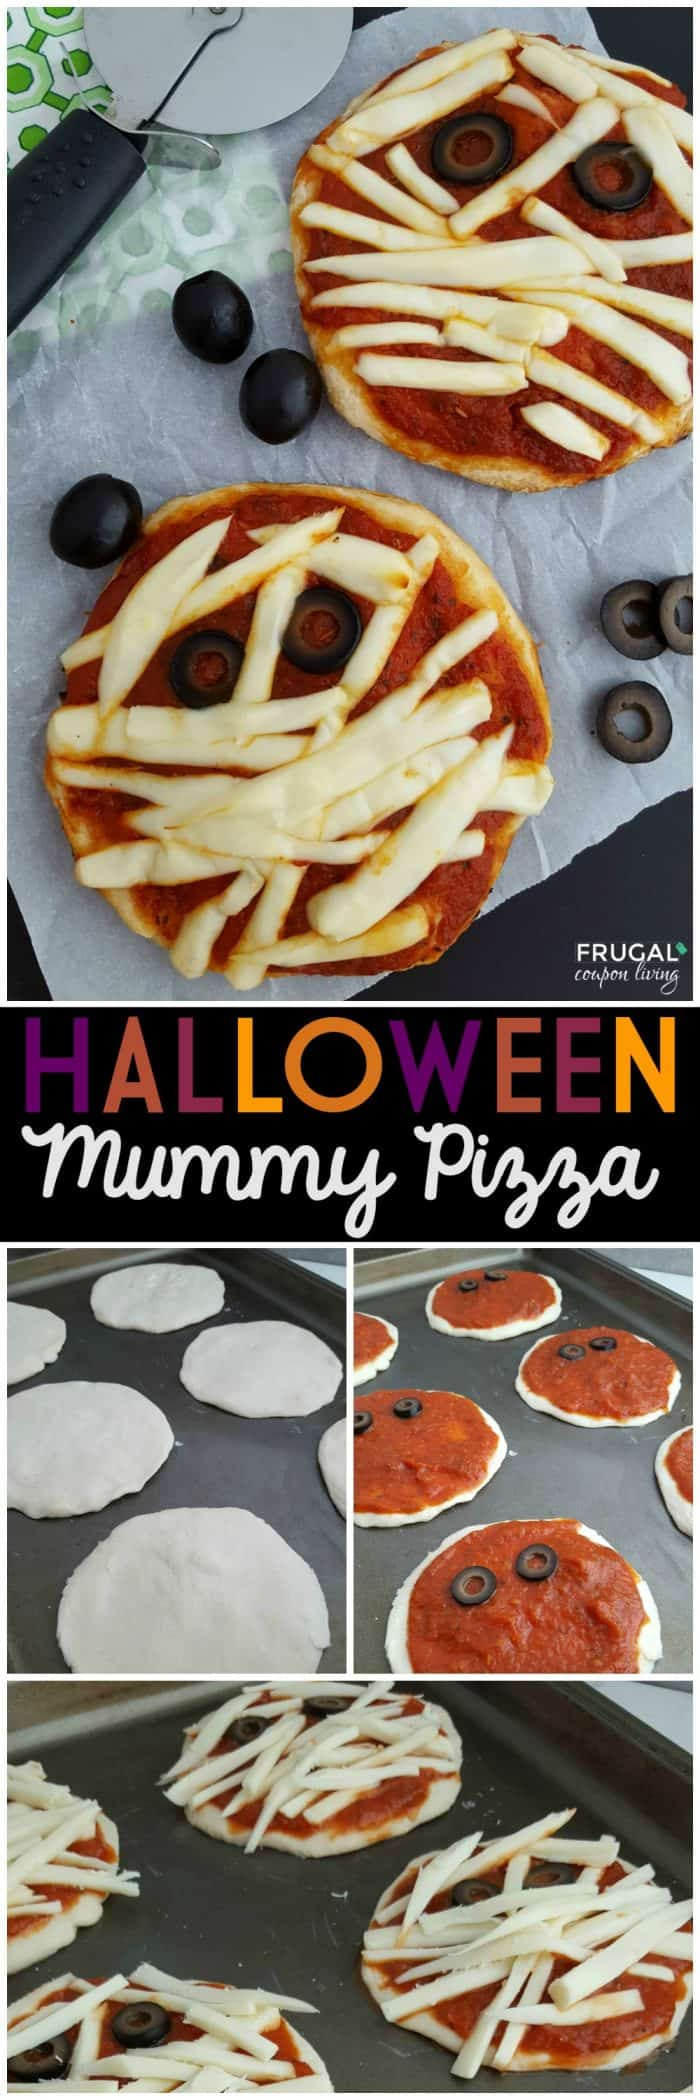 mummy-pizza-frugal-coupon-living-long